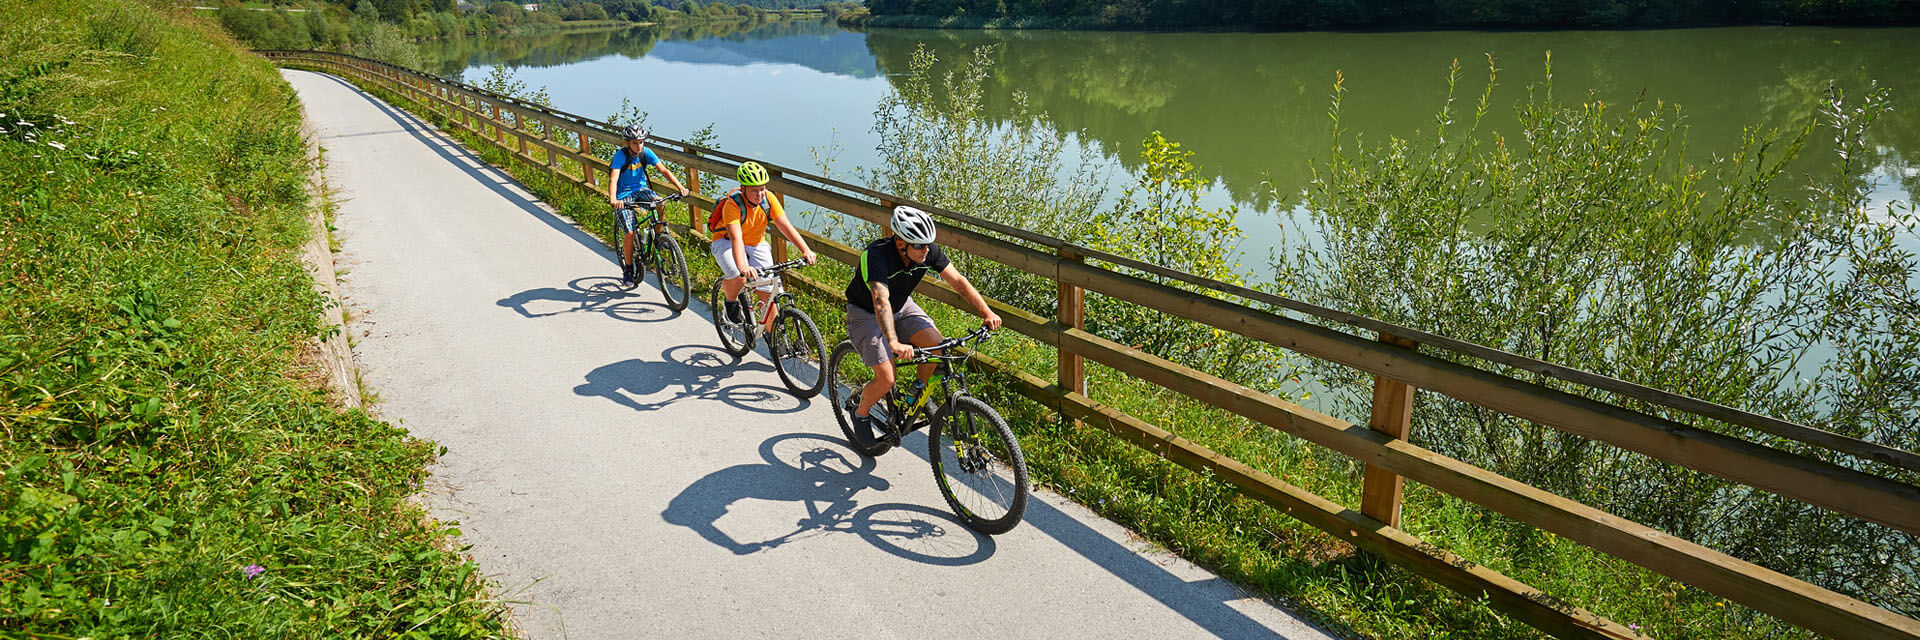 Experience the Drava River by Bicycle